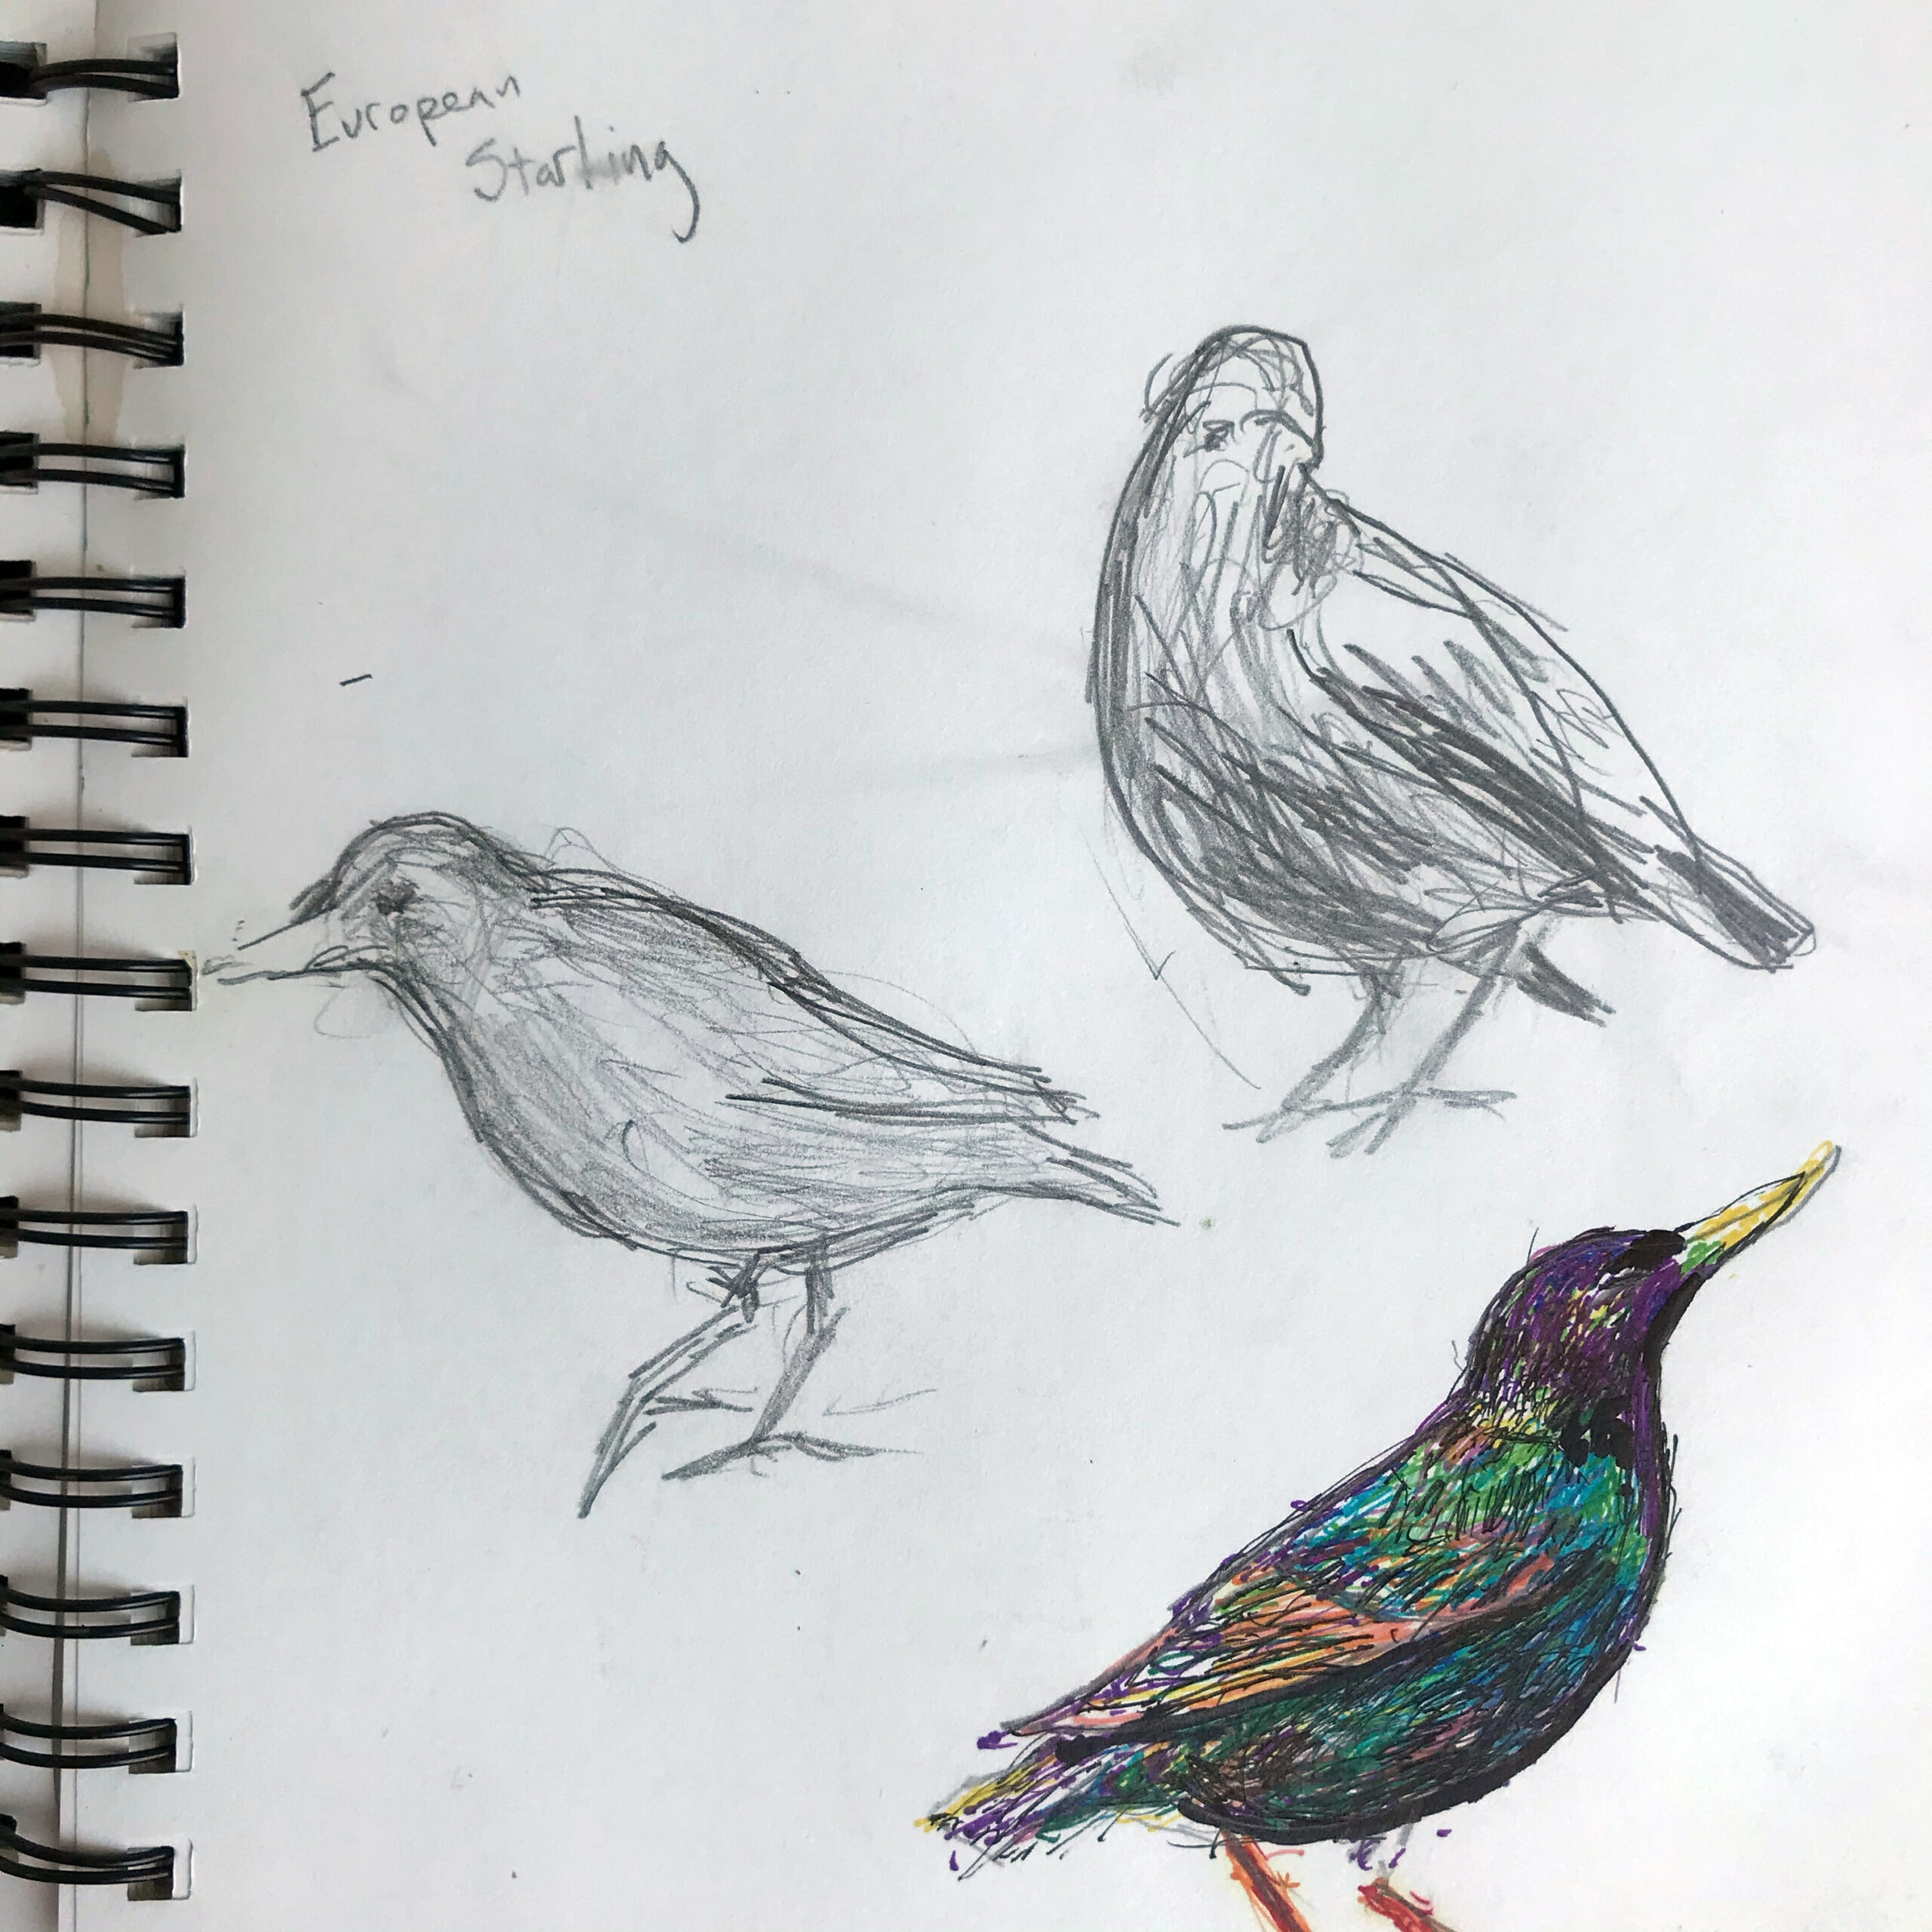 Sketches of European Starlings by Noel hefele